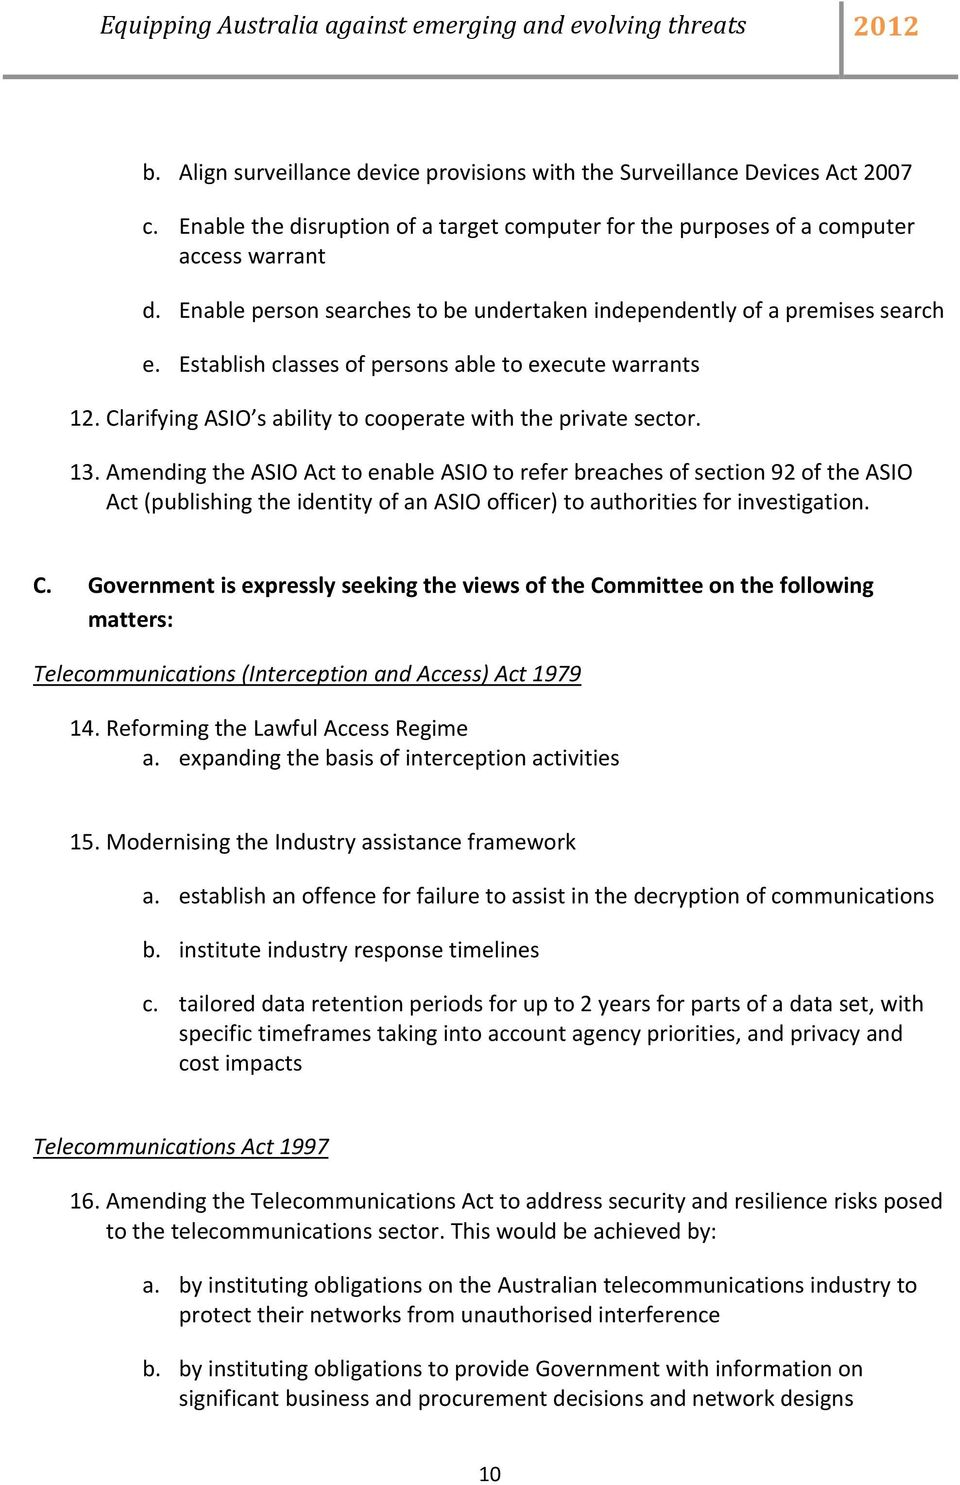 13. Amending the ASIO Act to enable ASIO to refer breaches of section 92 of the ASIO Act (publishing the identity of an ASIO officer) to authorities for investigation. C.